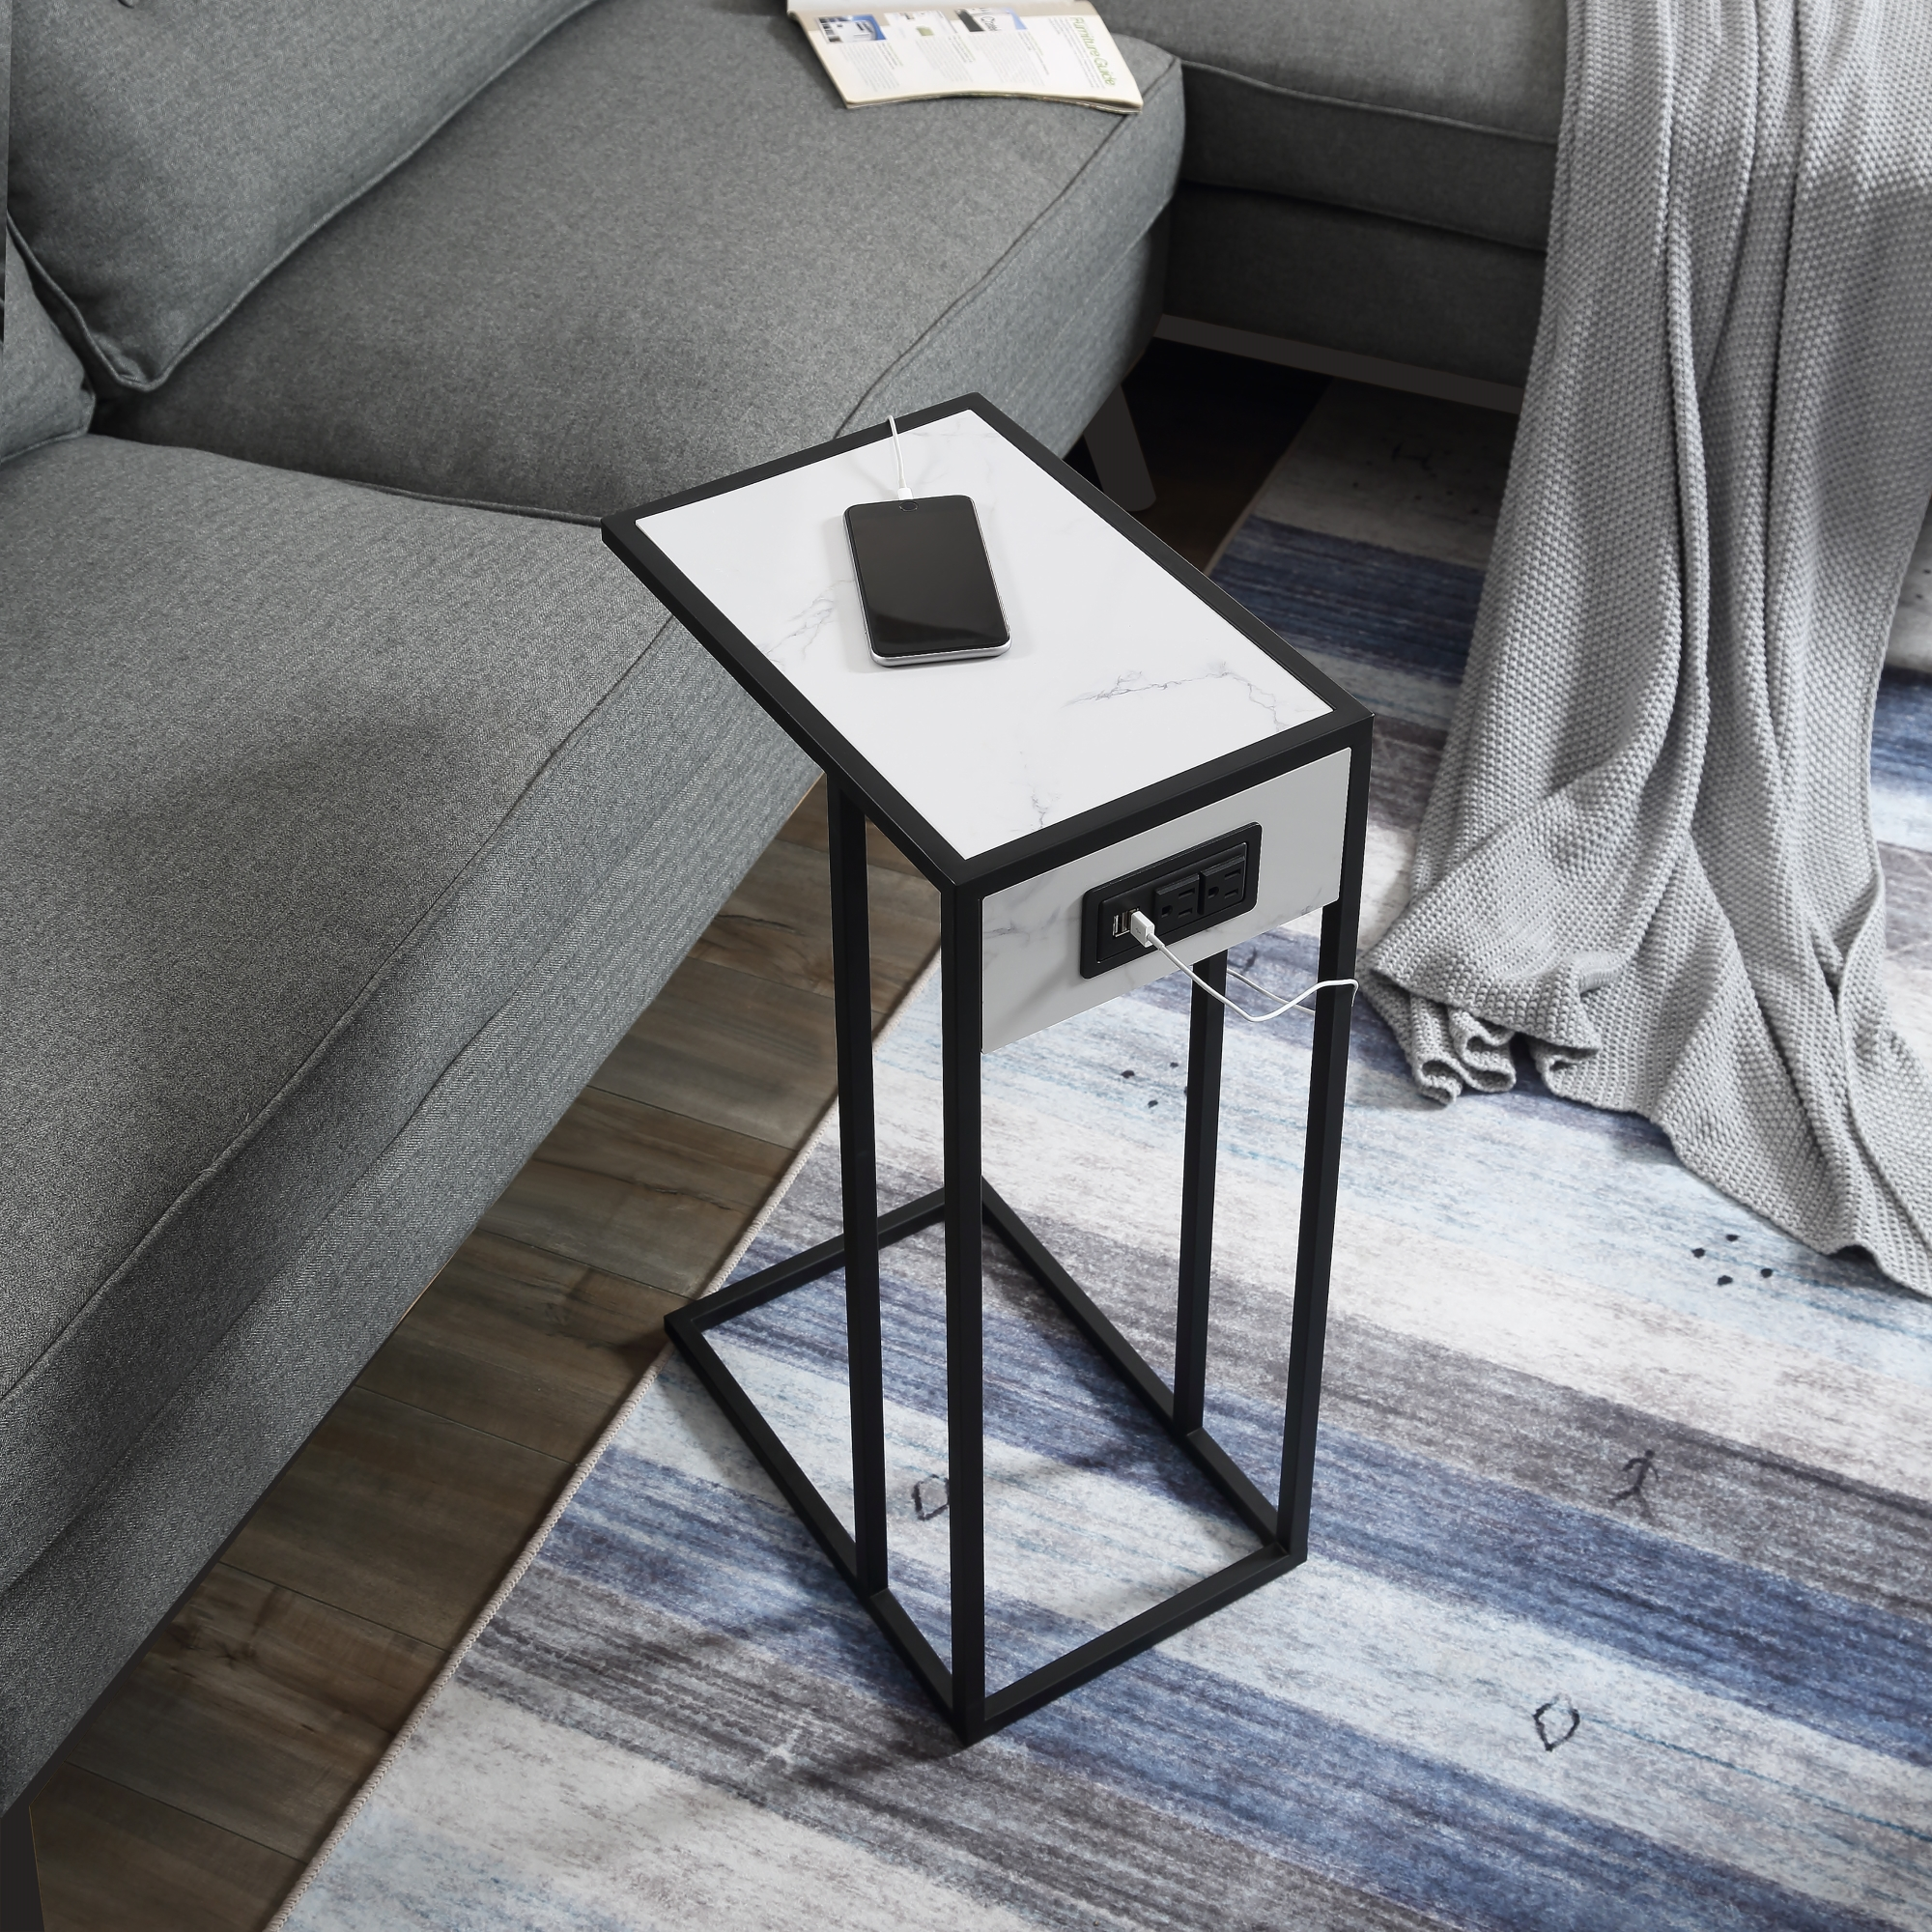 Loft Lyfe White/Black End Table 2 USB Charging Ports, 2 Outlets, Power Plug MDF with Faux Marble Veneer Top, Metal Base